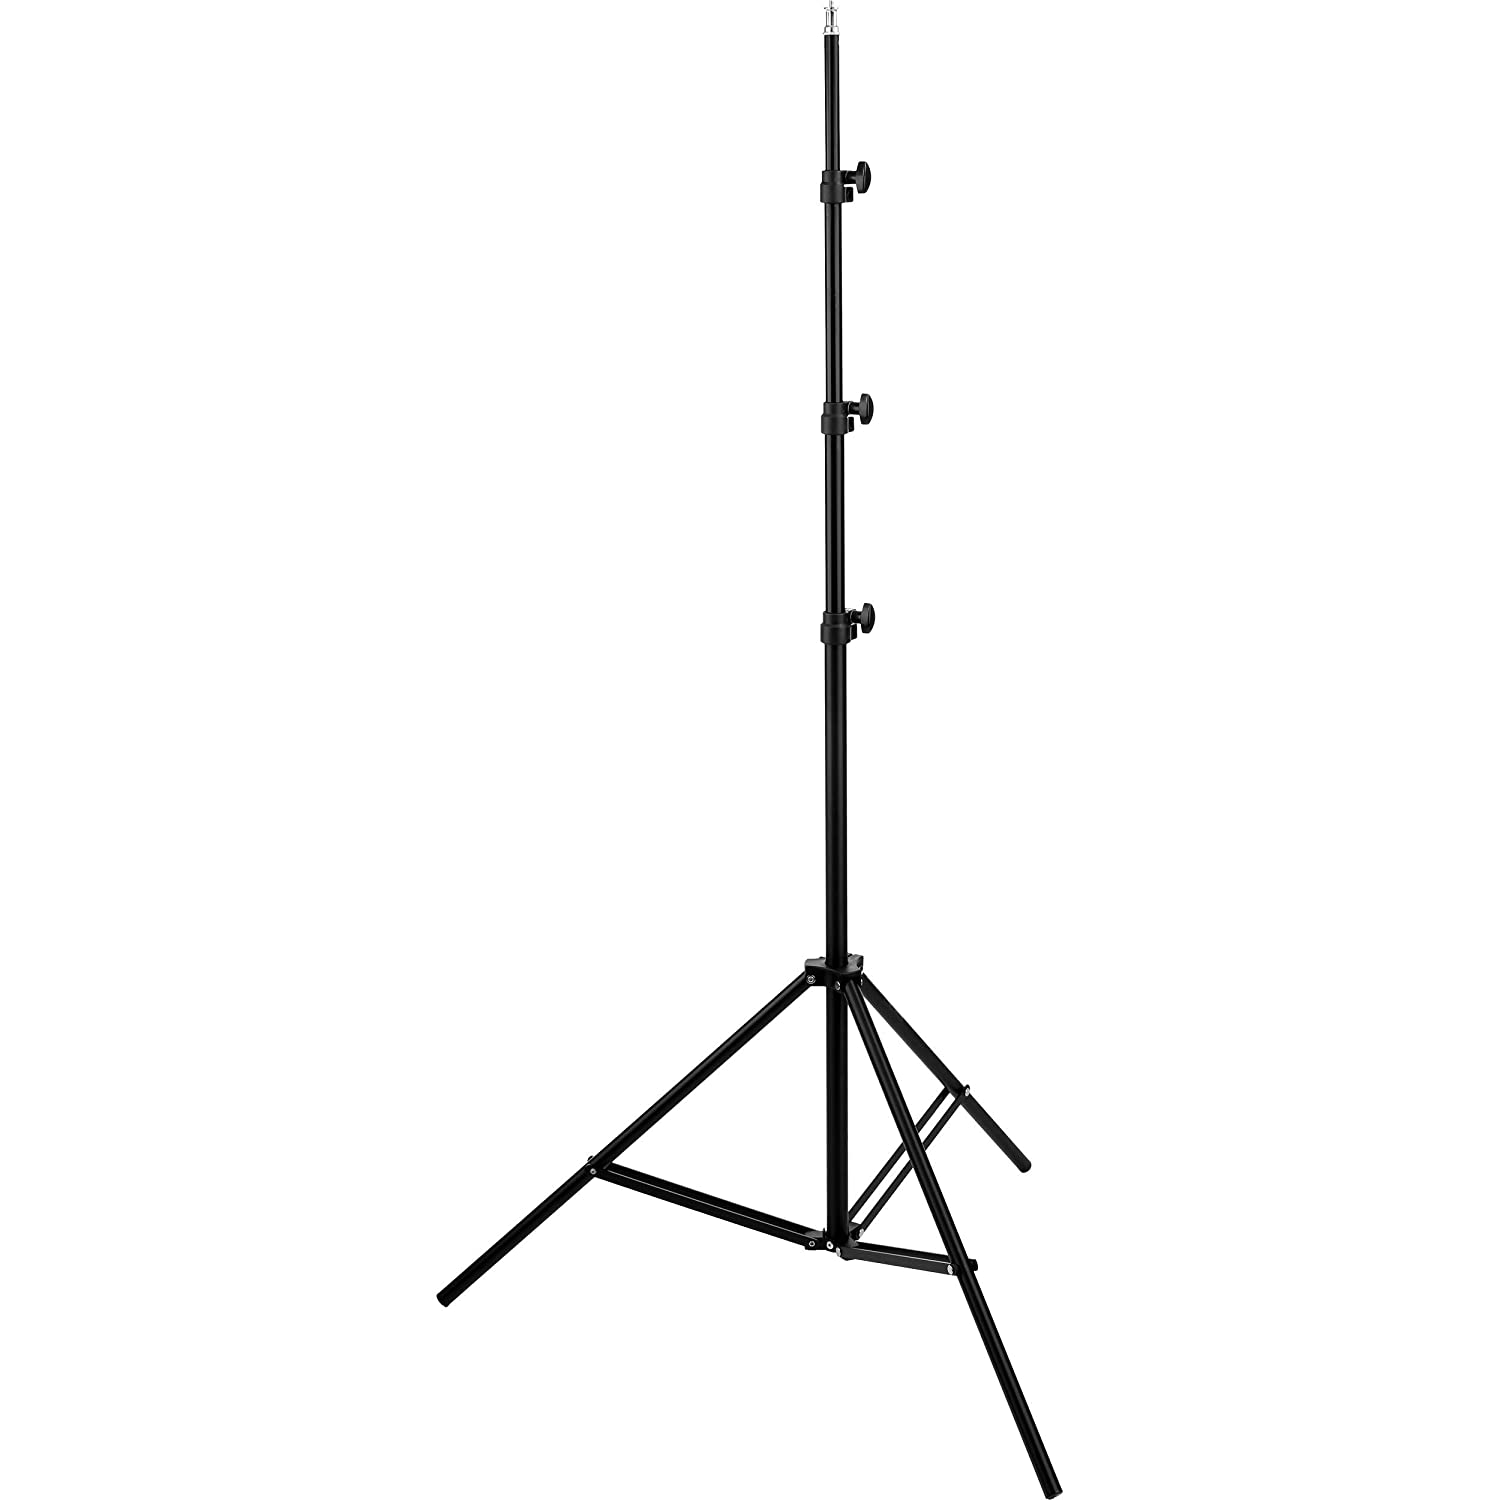 Camera Flashes Buy Online At Best Prices In India Flash Light Circuit Back Shopee Portable Foldable Umbrella Photo Video Studio Lighting Photography Stand